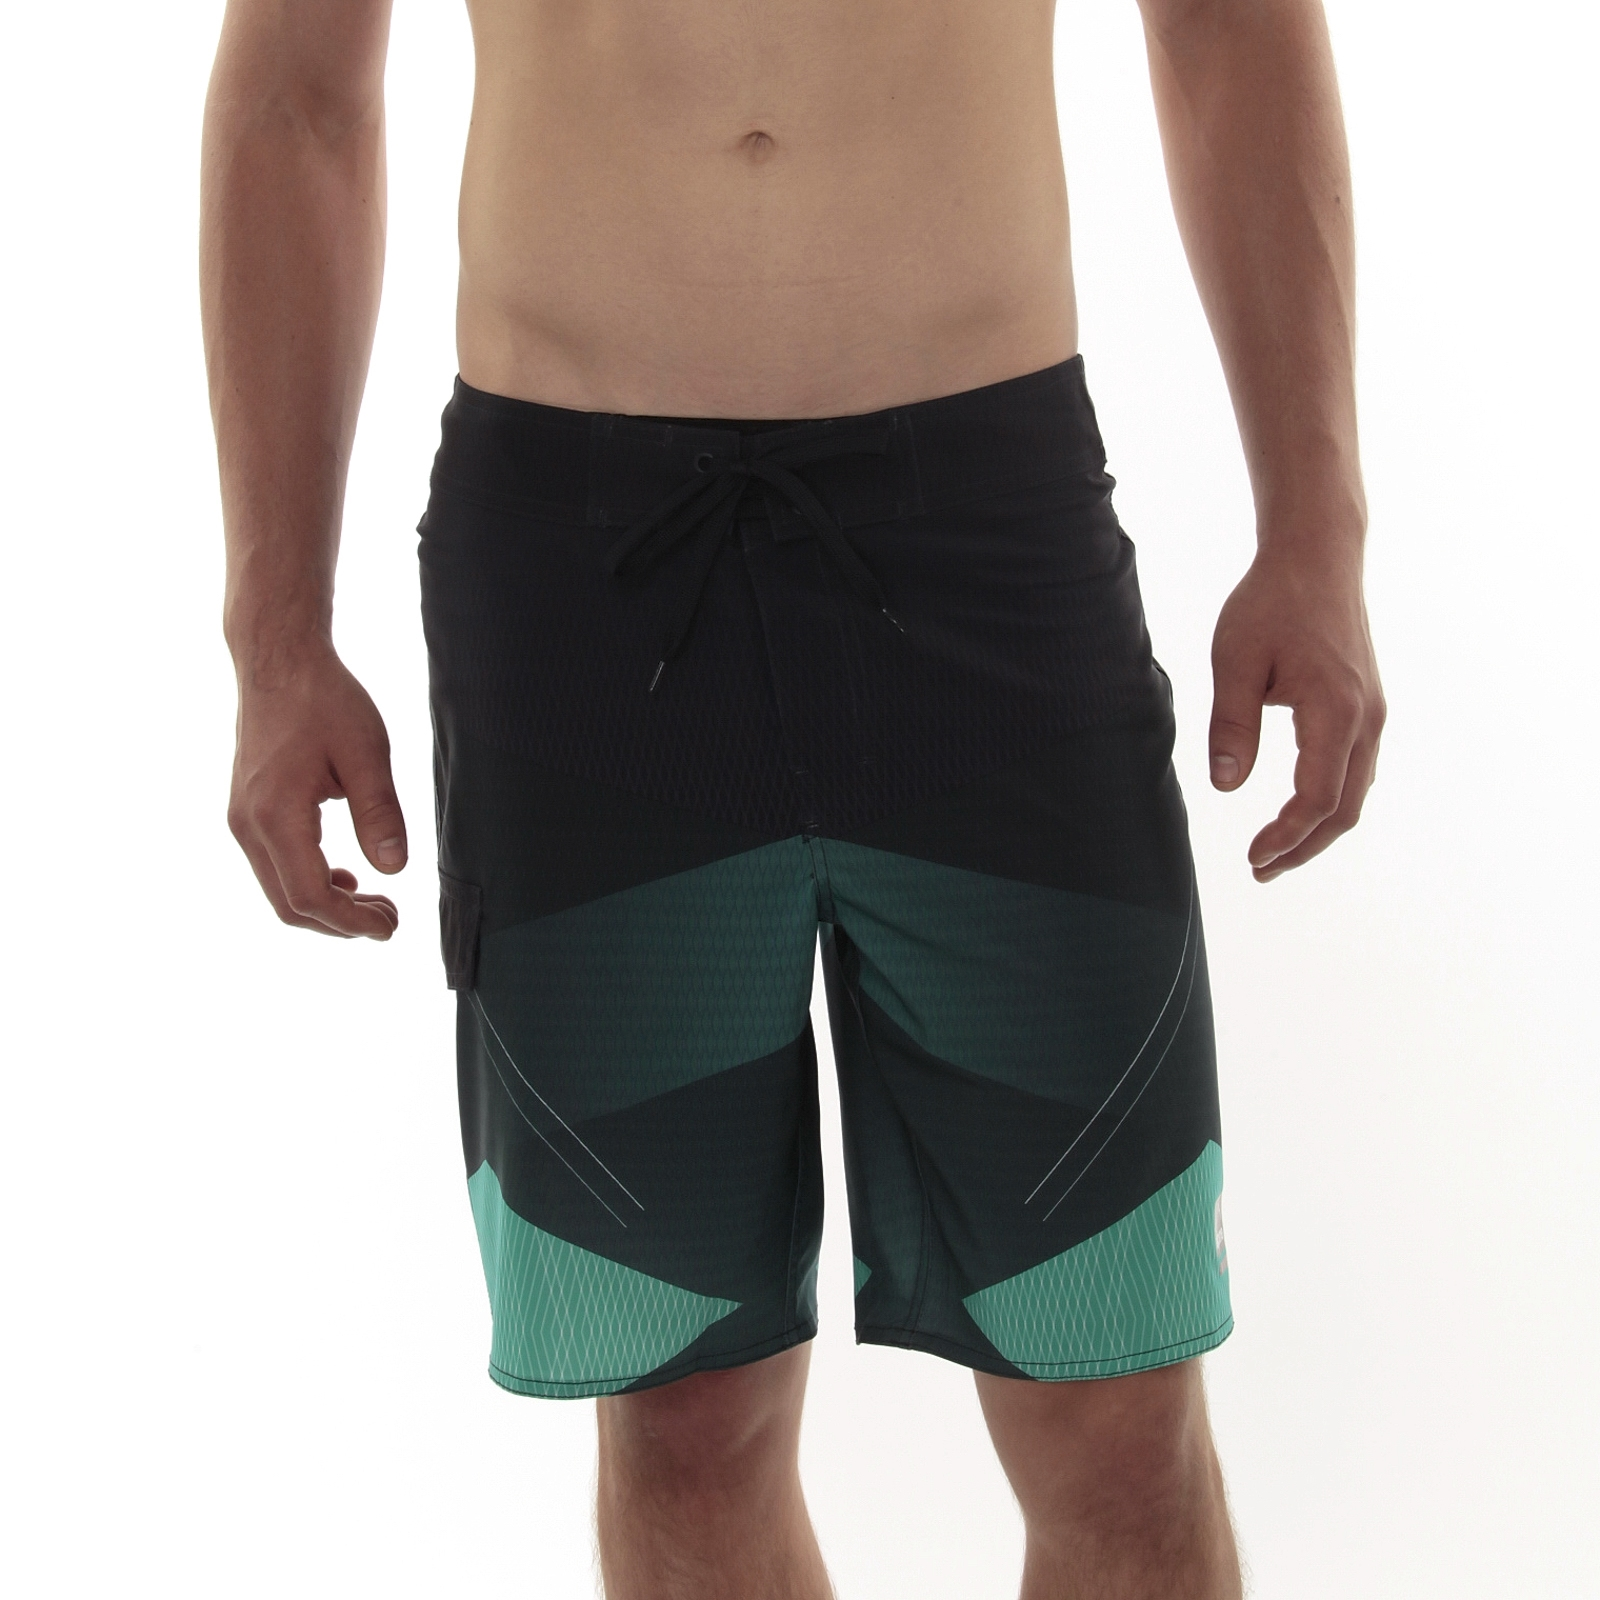 Online shopping for Shorts & Trunks from a great selection at Clothing Store.